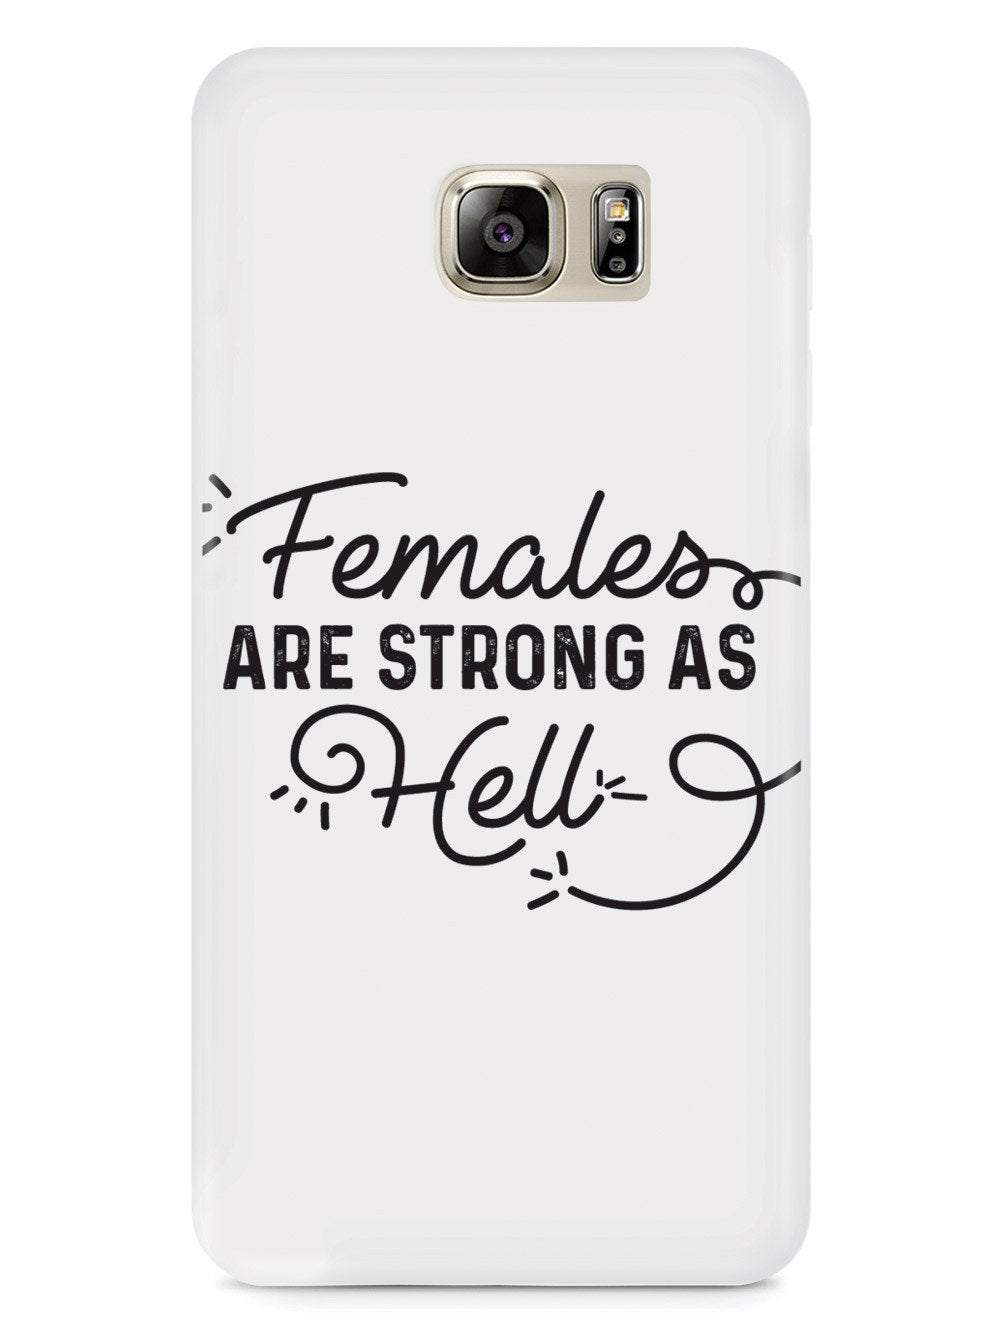 Females Are Strong As Hell Case - pipercleo.com